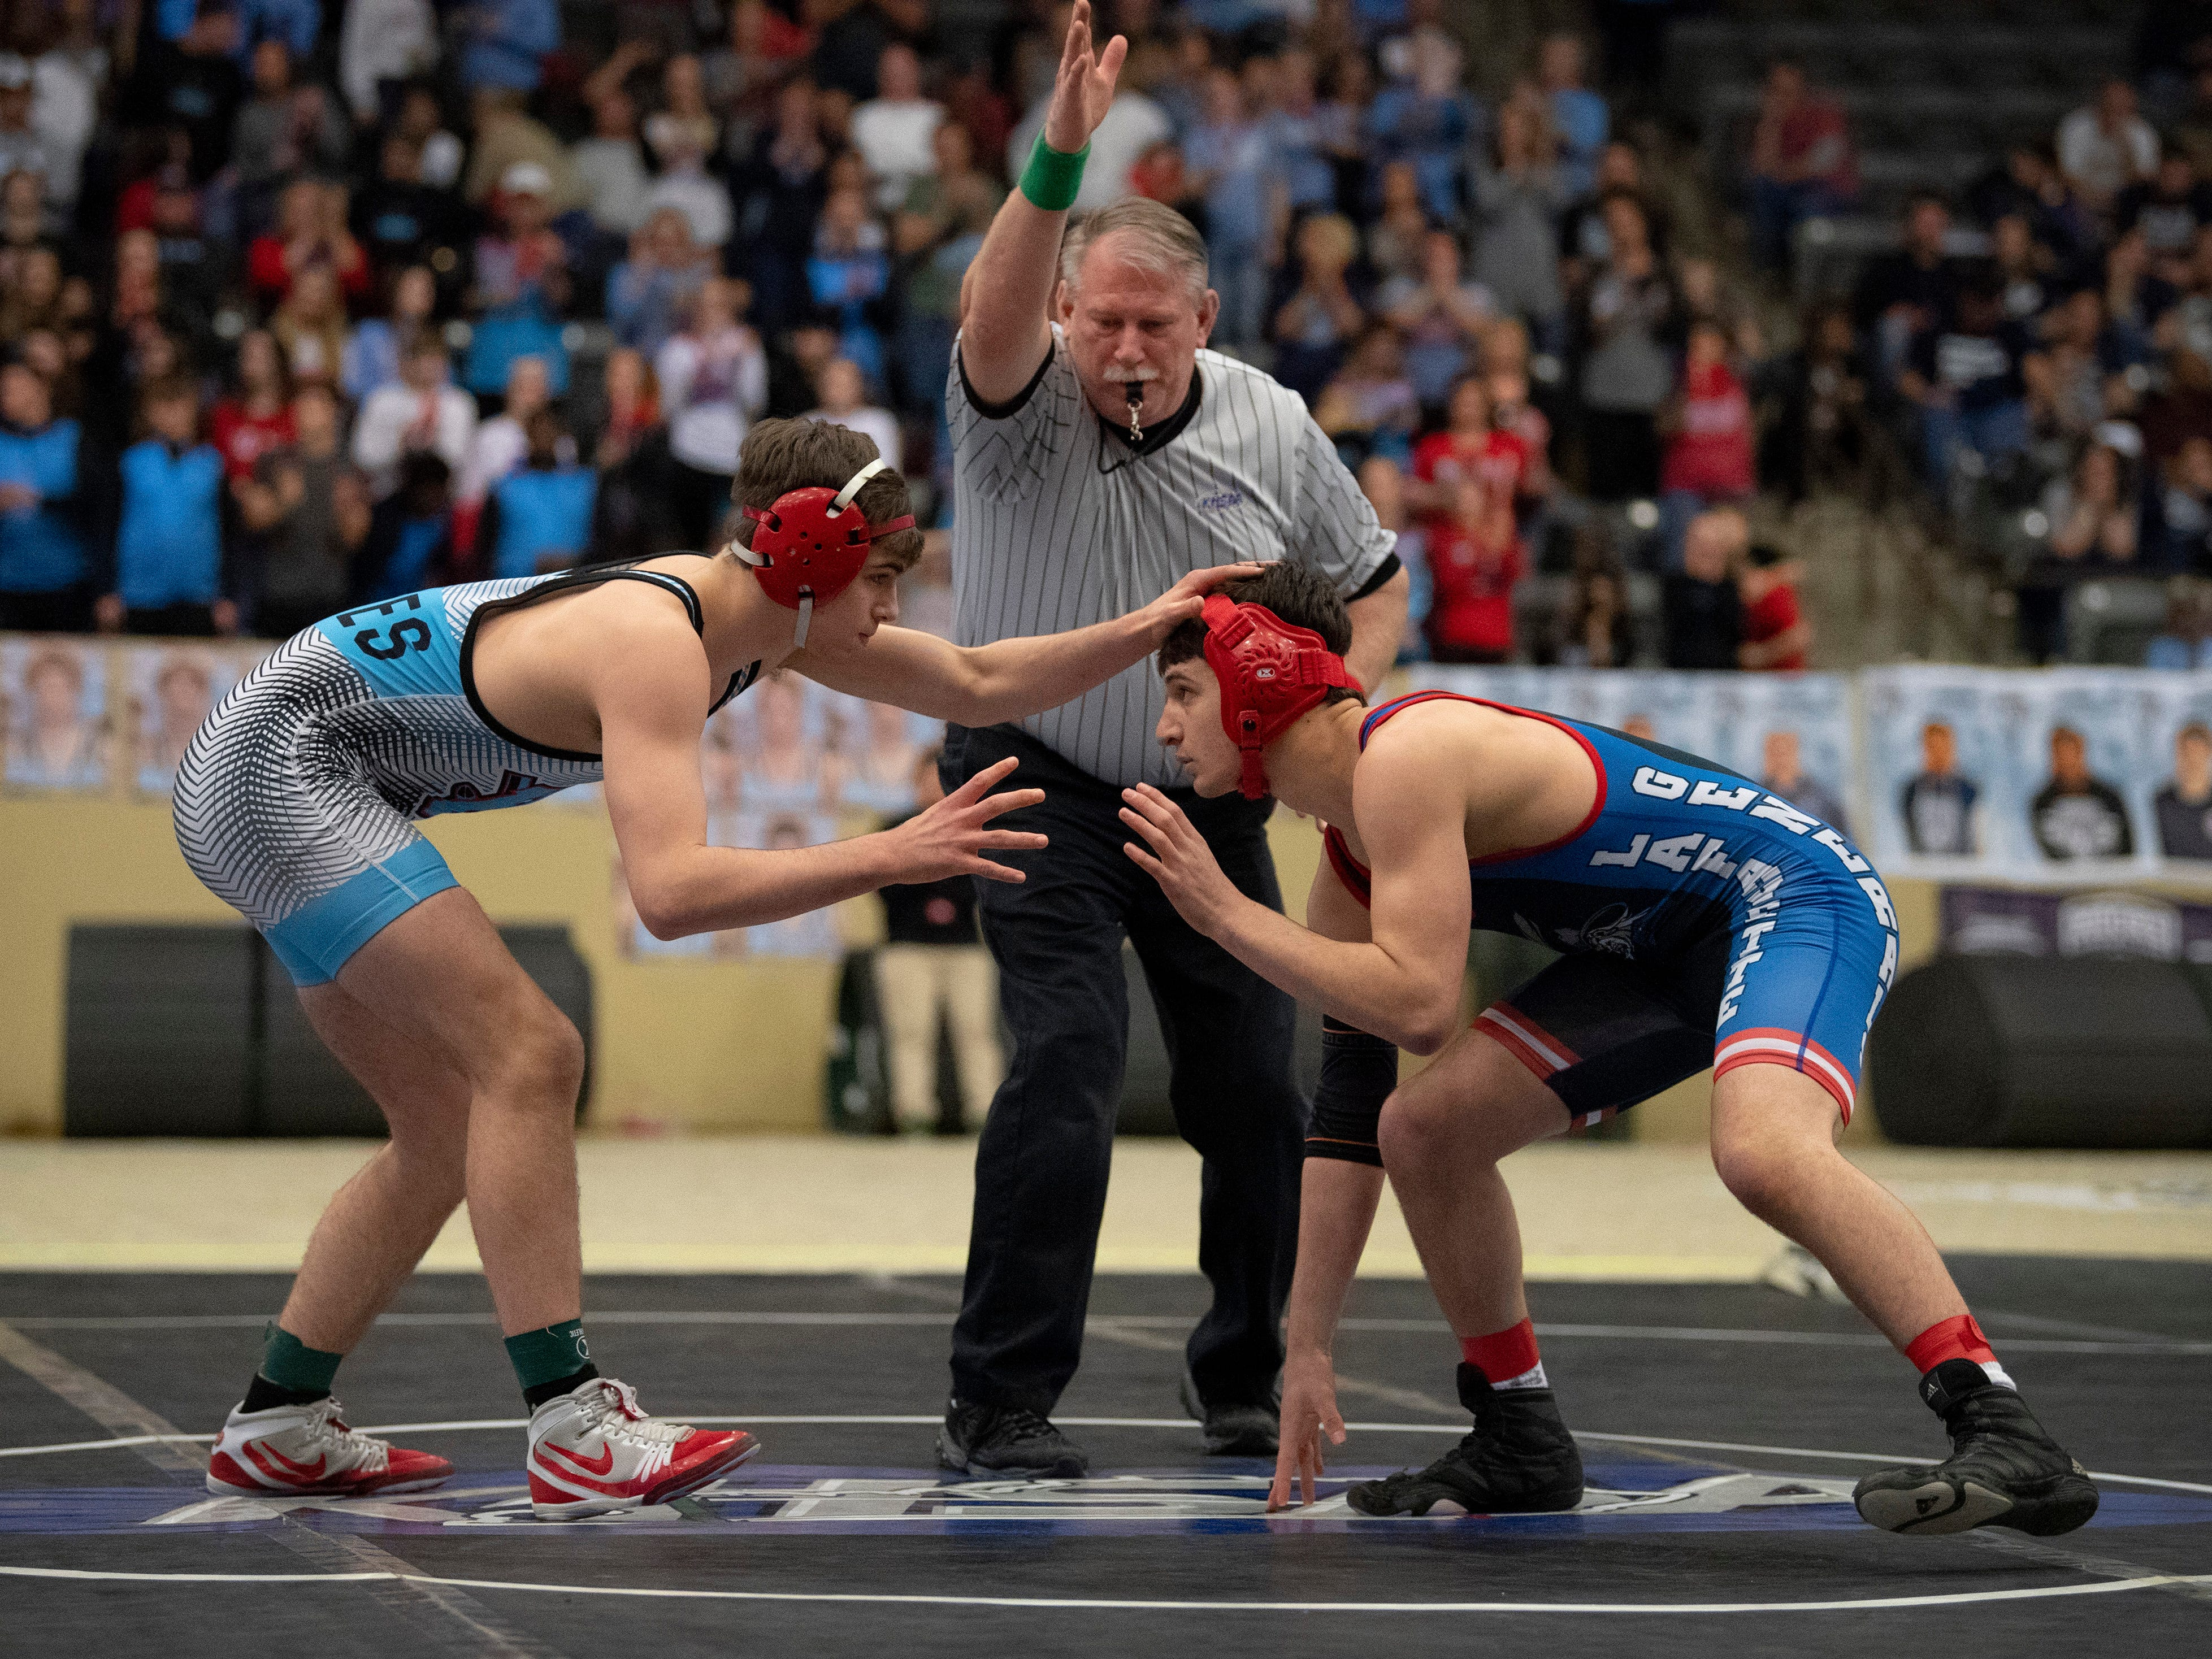 Union County's Dalton Russelburg, left, competes against Lafayette's Brayden Giannone for the 152-pound championship at the KHSAA State Wrestling Championships at the Alltech Arena in Lexington, Ky., Saturday afternoon.